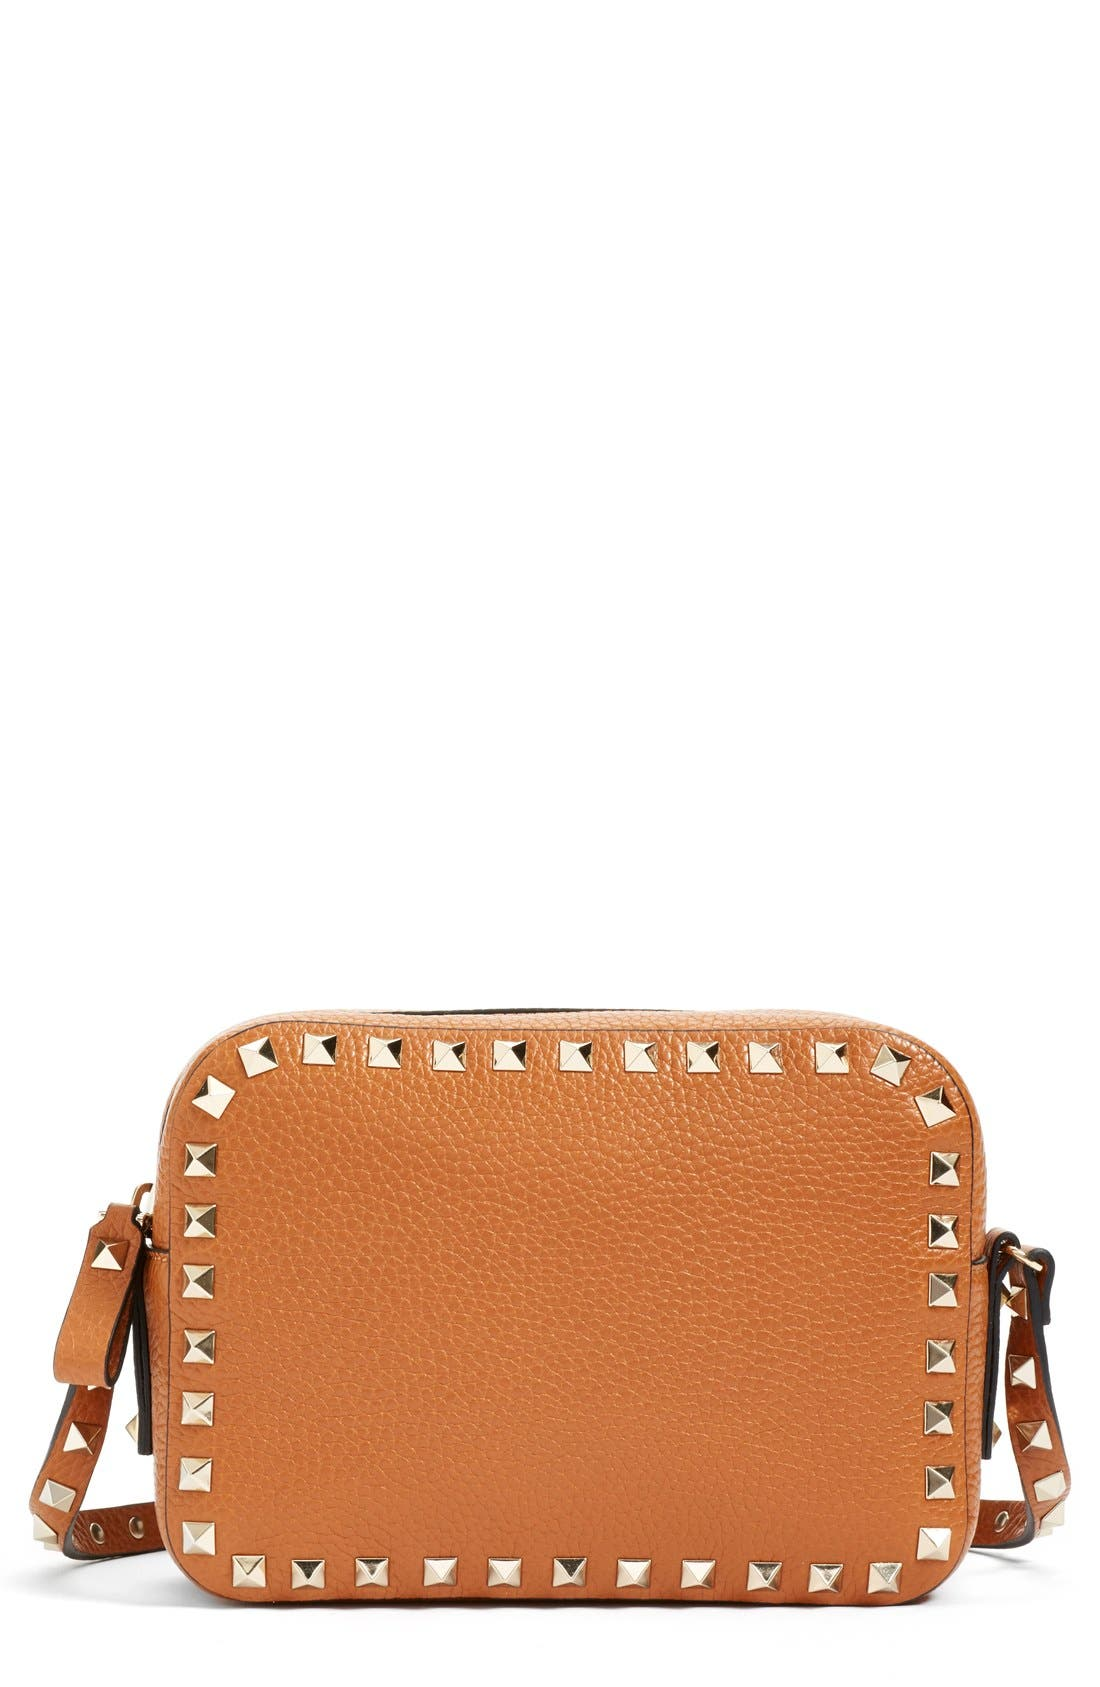 Alternate Image 1 Selected - Valentino 'Rockstud - Alce' Calfskin Leather Camera Crossbody Bag